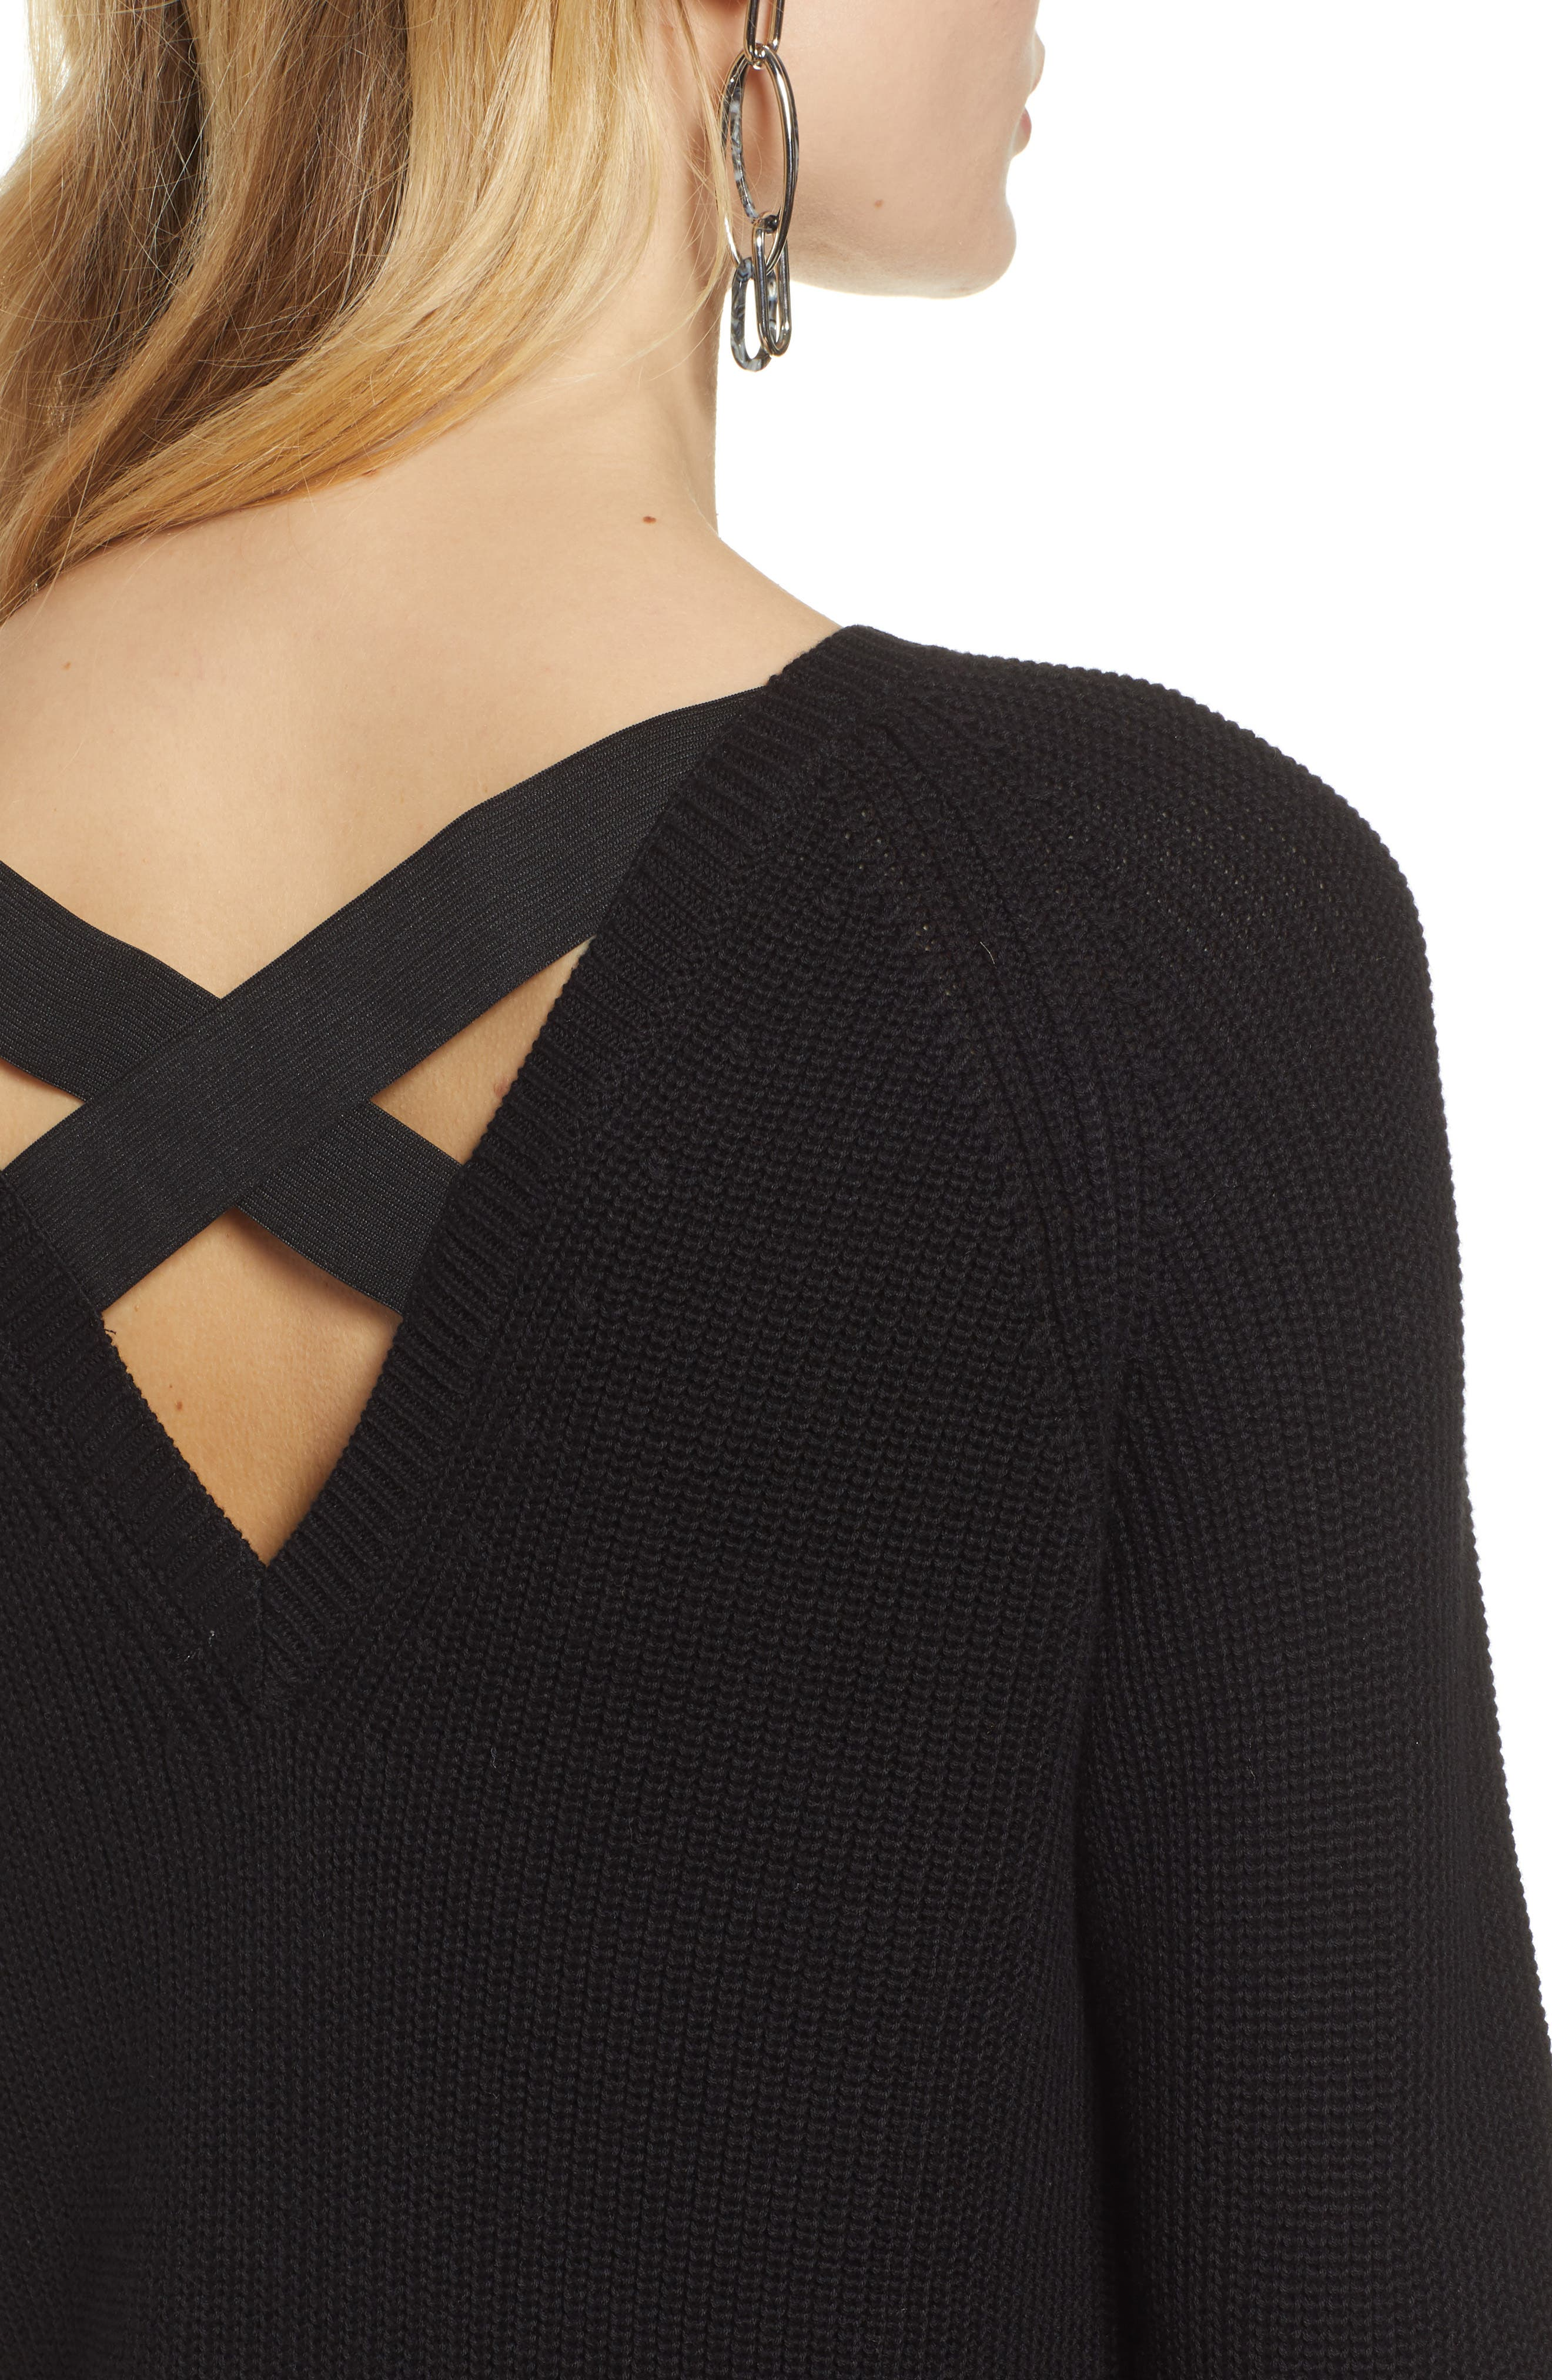 HALOGEN<SUP>®</SUP>, Cross Back Sweater, Alternate thumbnail 4, color, BLACK